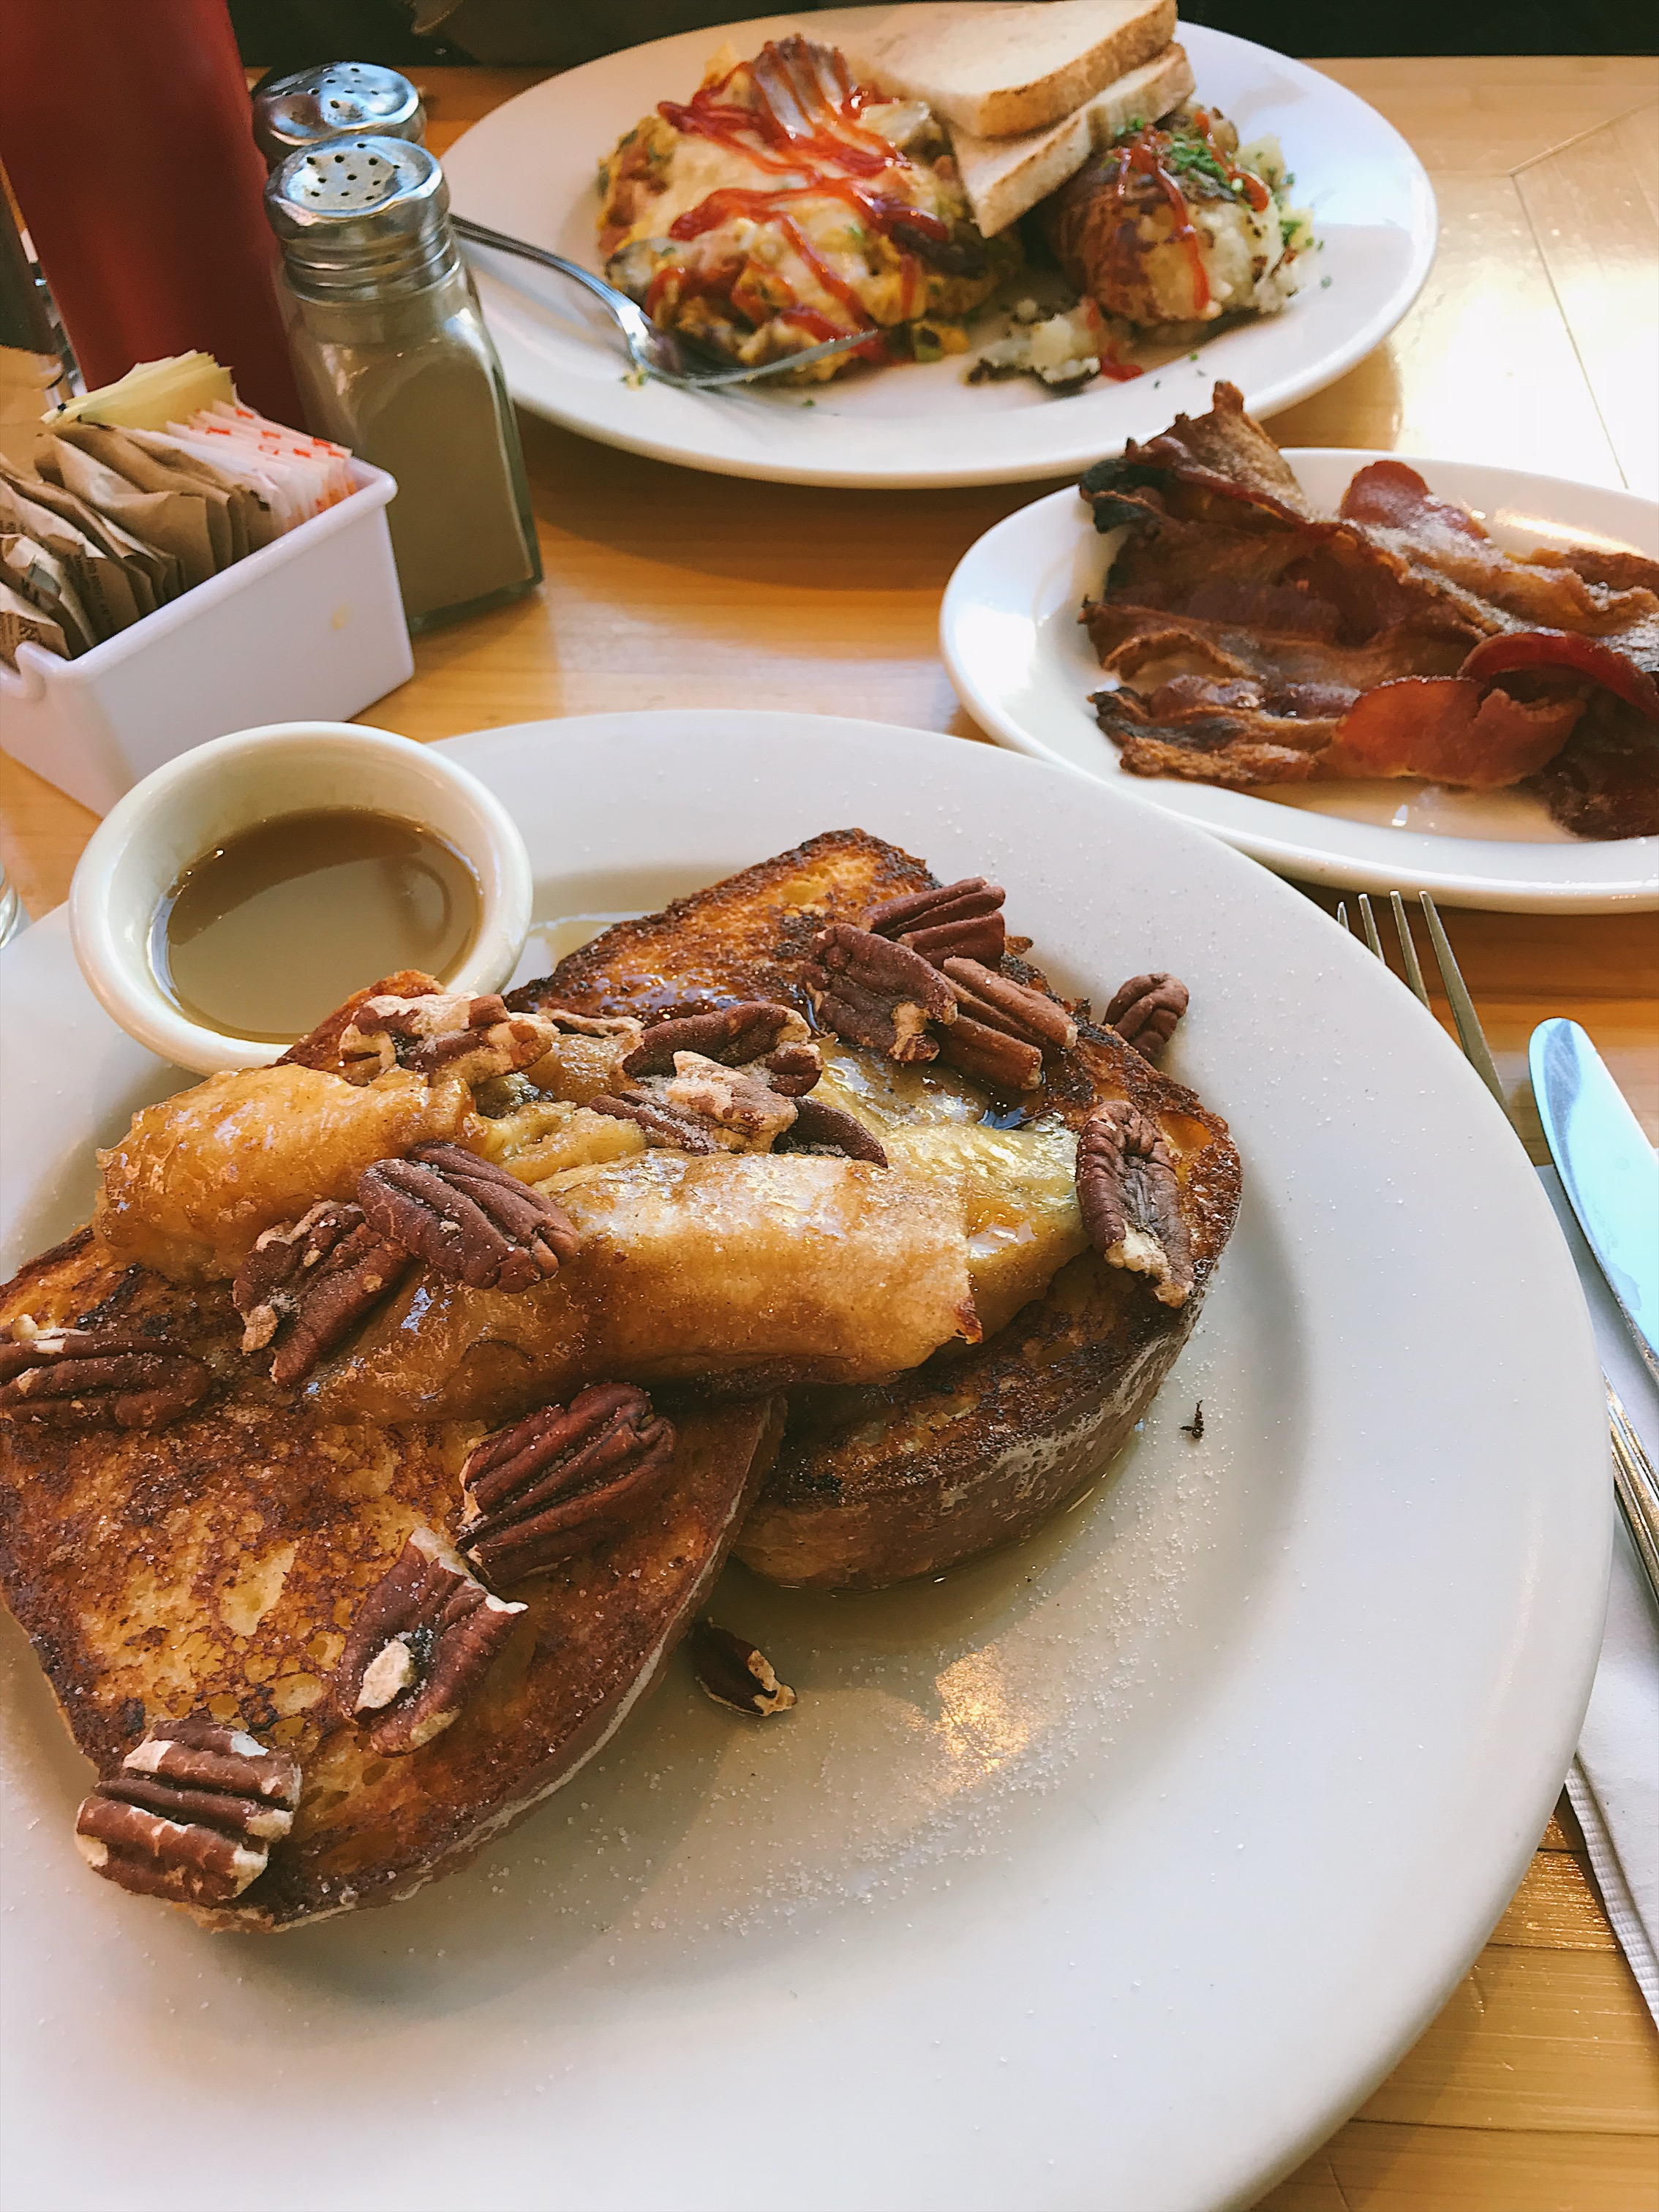 Ok, guys. You need to order this Brioche french toast with bananas foster and brown butter syrup. A MUST.